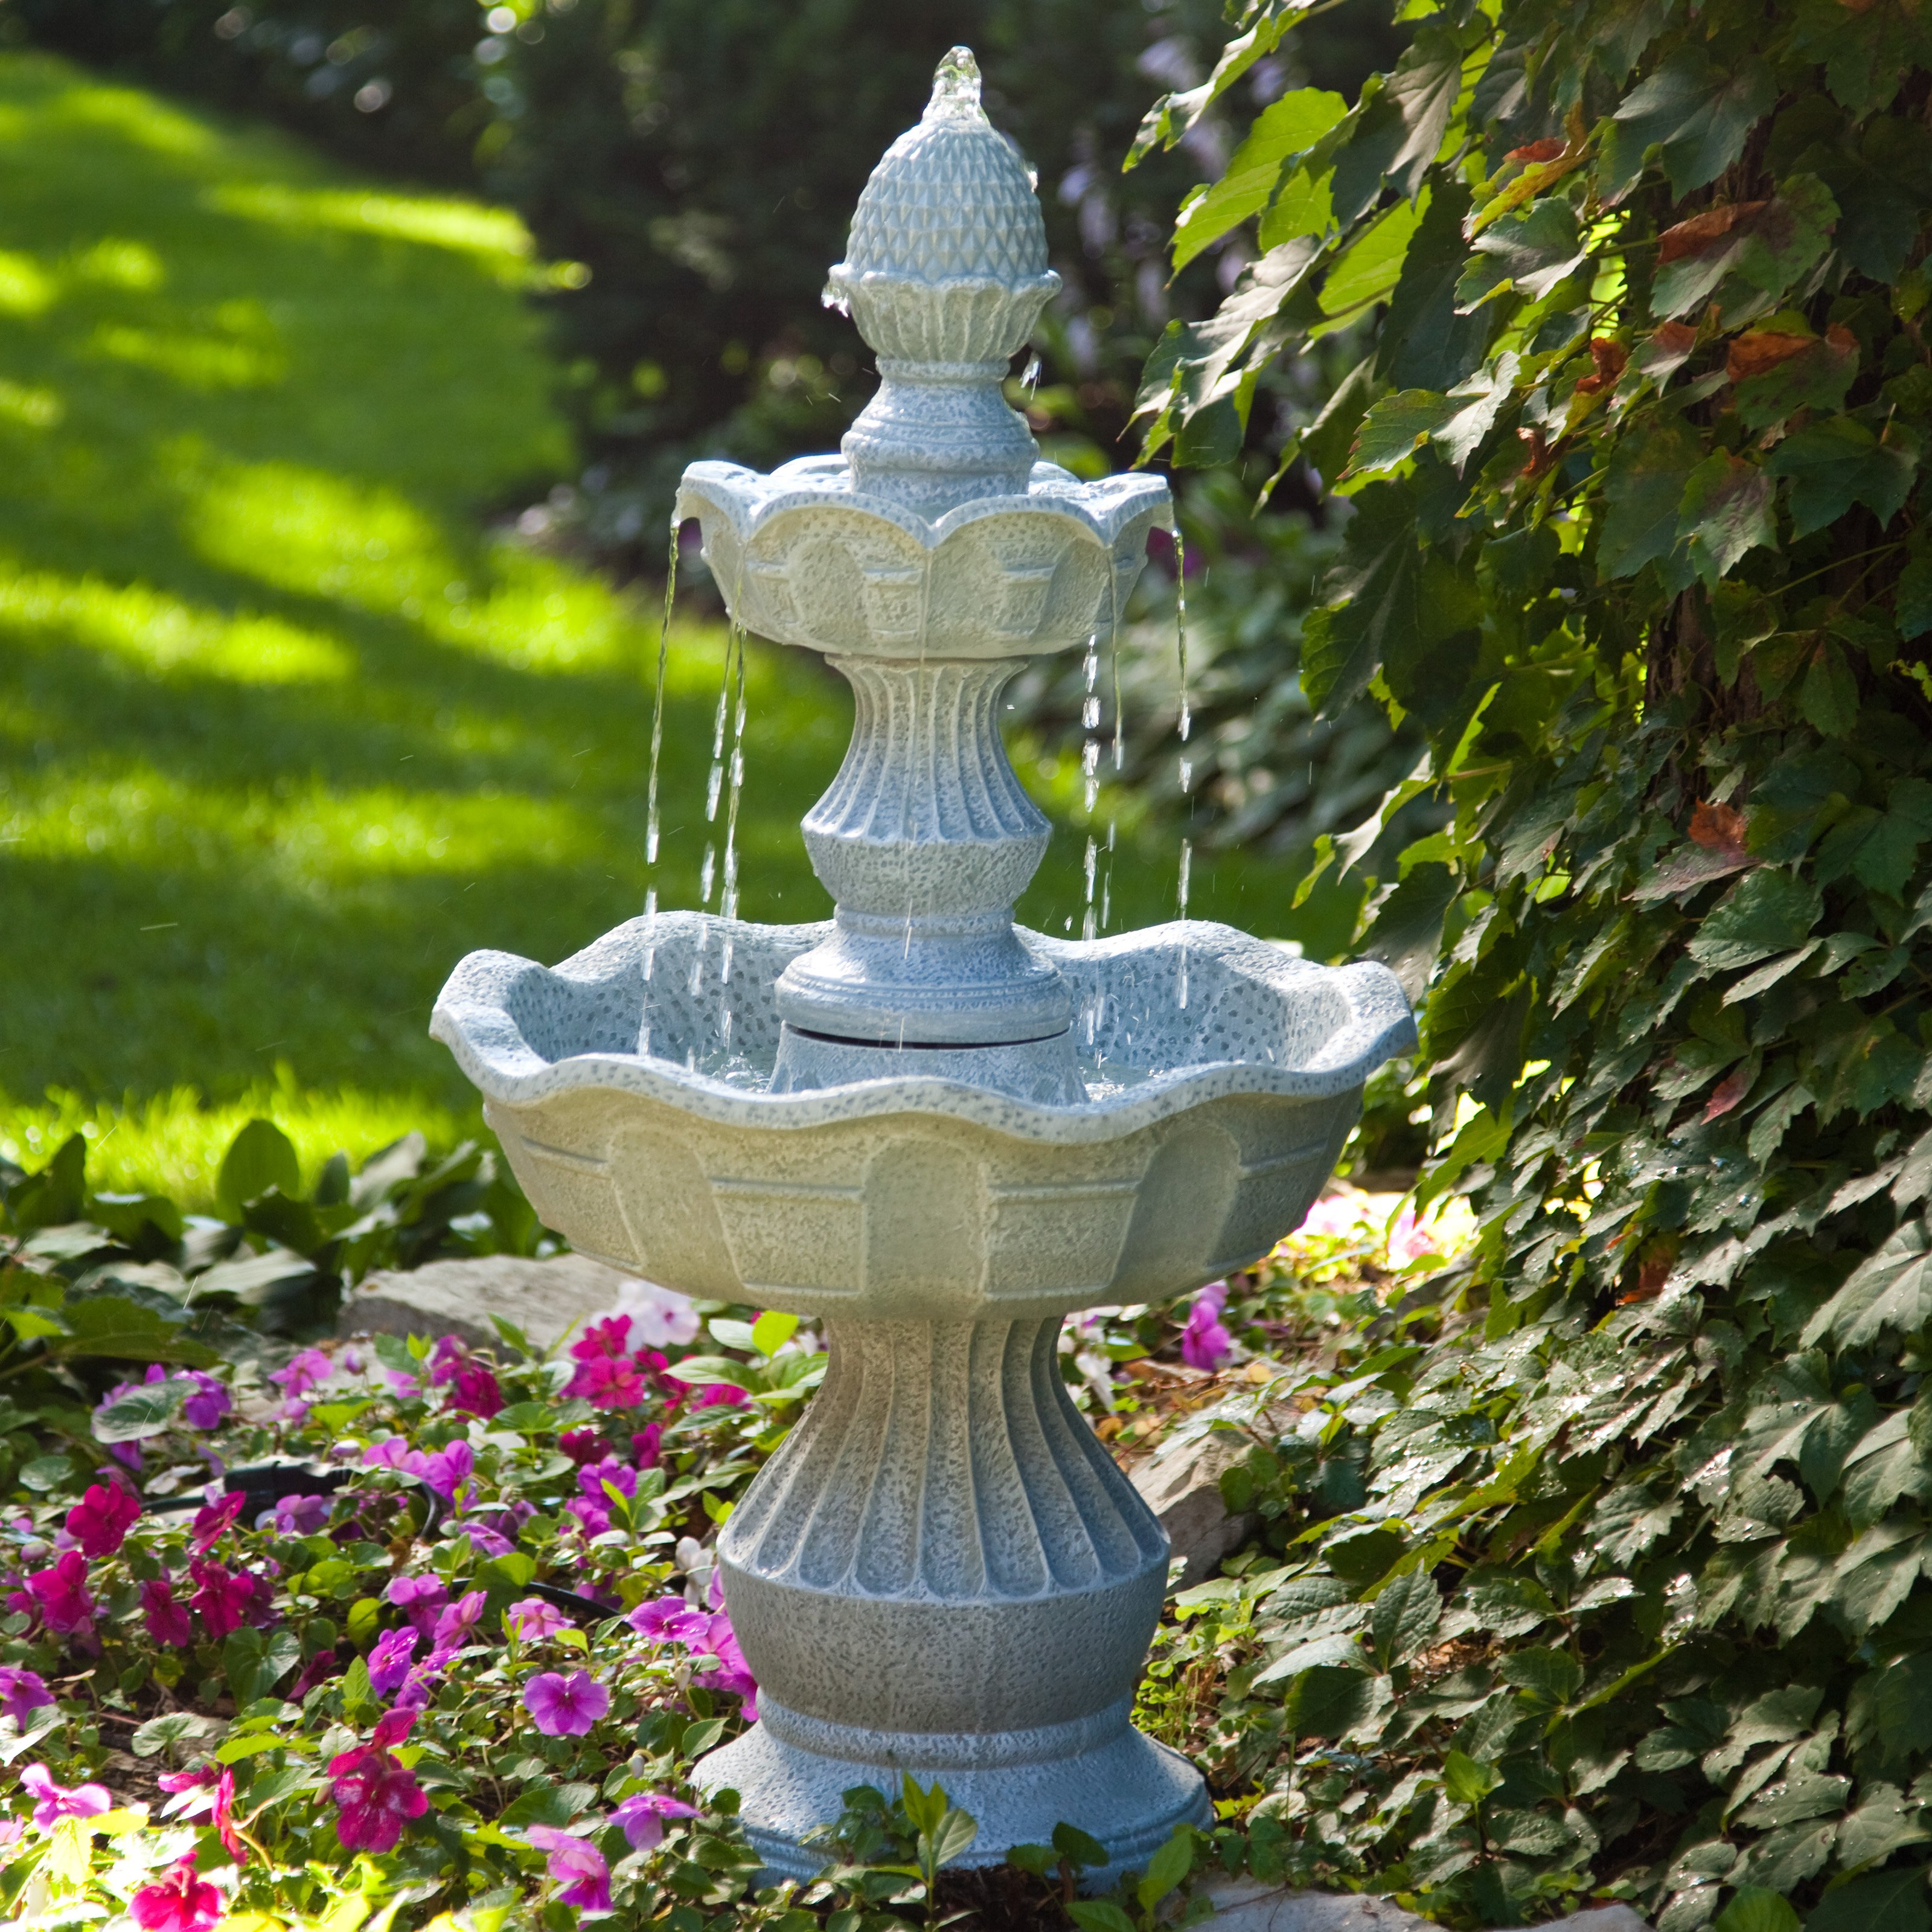 garden fountains welcome garden pineapple tiered outdoor fountain | hayneedle NXLIPEO